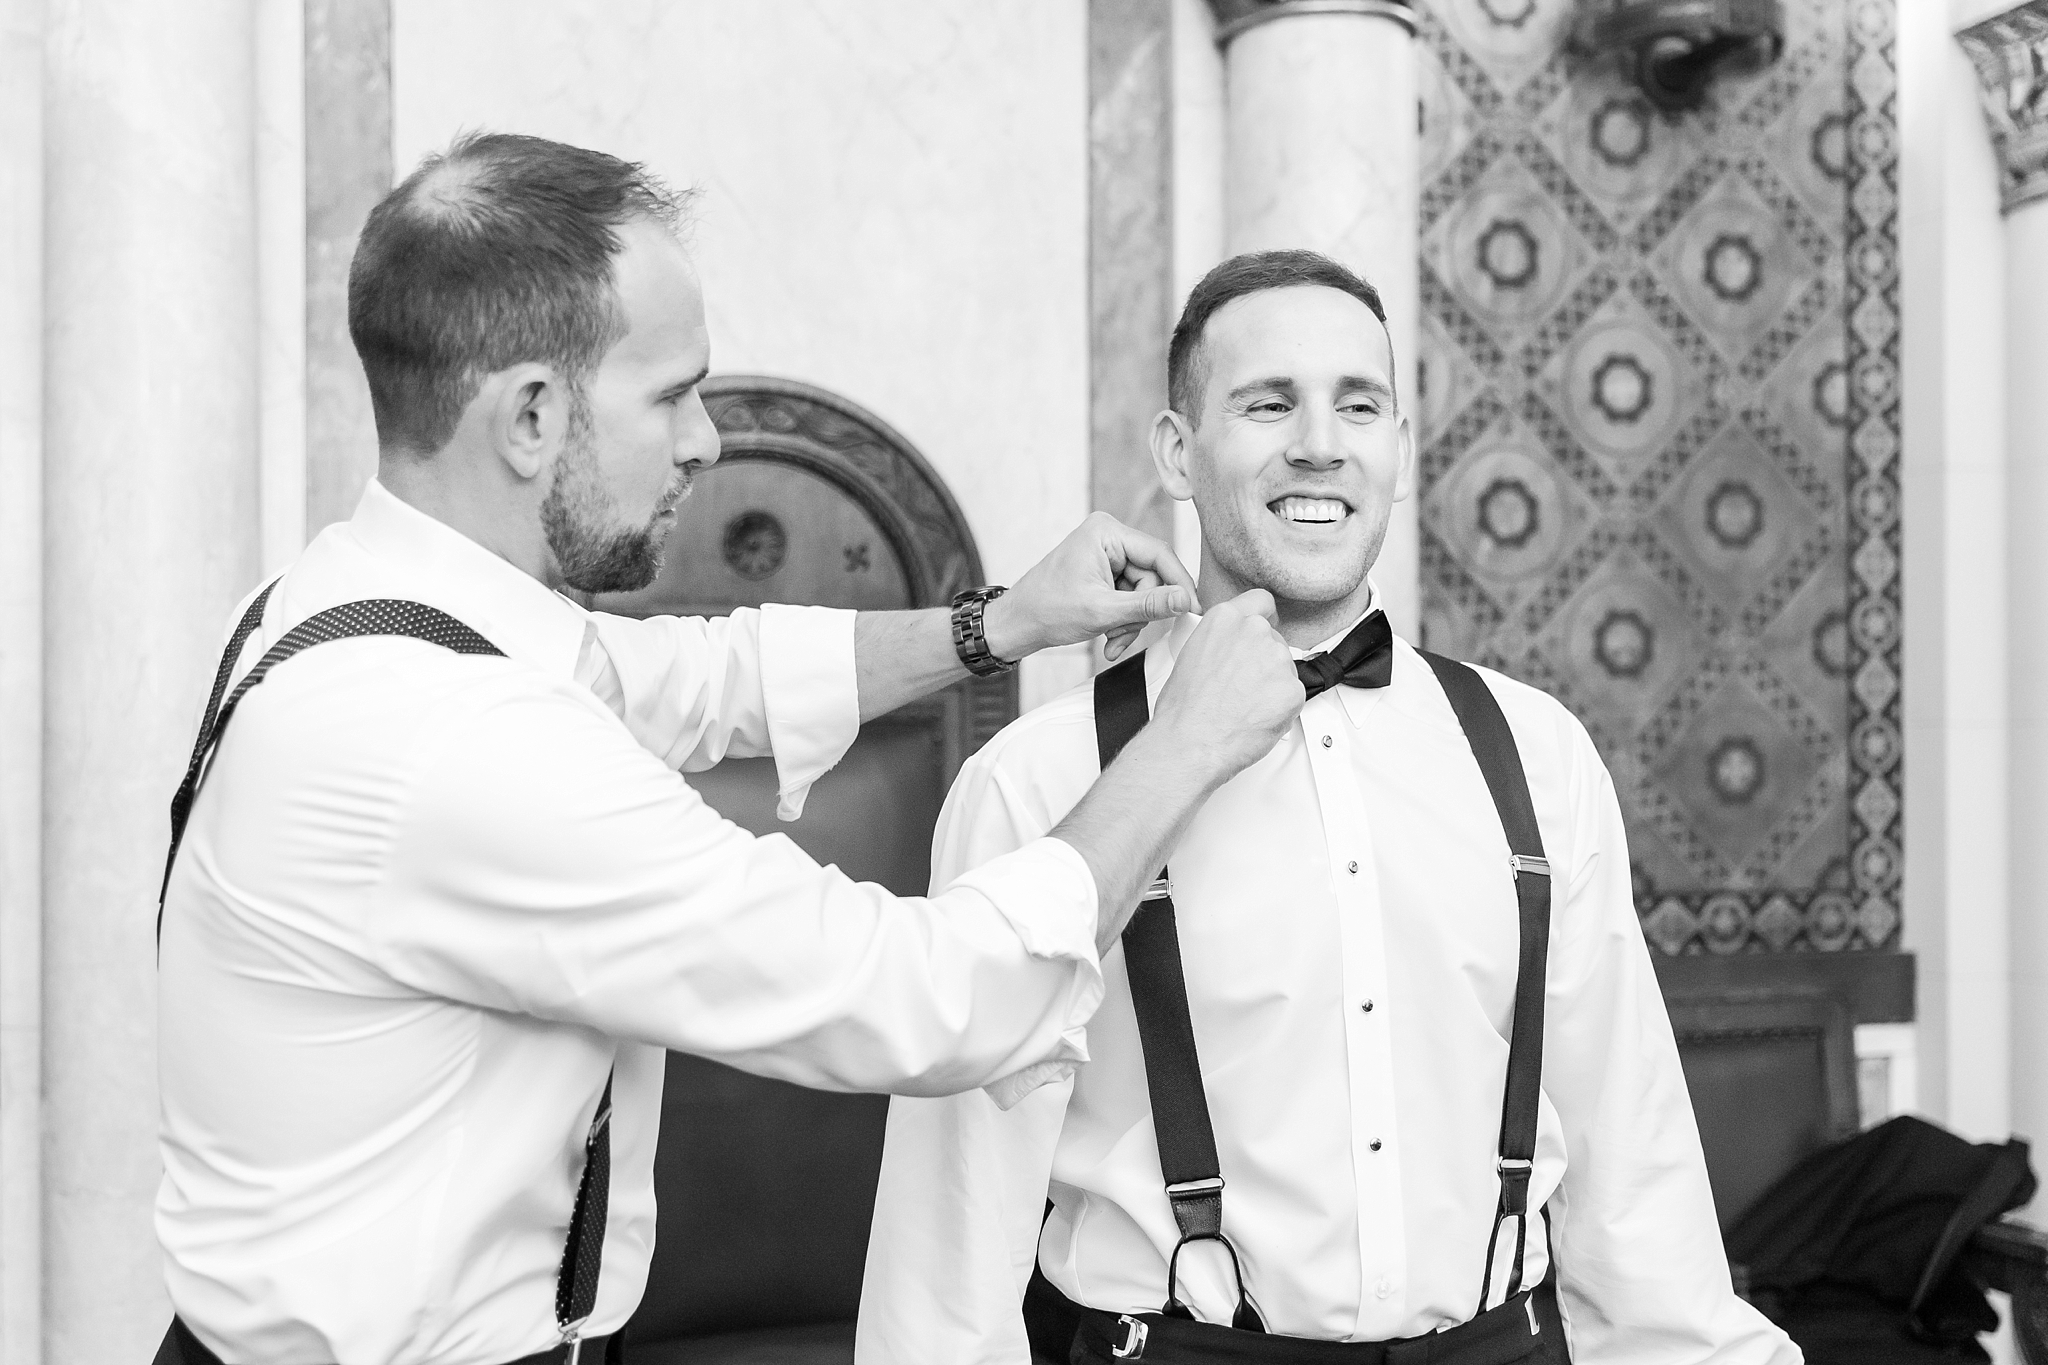 candid-romantic-wedding-photos-at-the-masonic-temple-belle-isle-detroit-institute-of-arts-in-detroit-michigan-by-courtney-carolyn-photography_0004.jpg